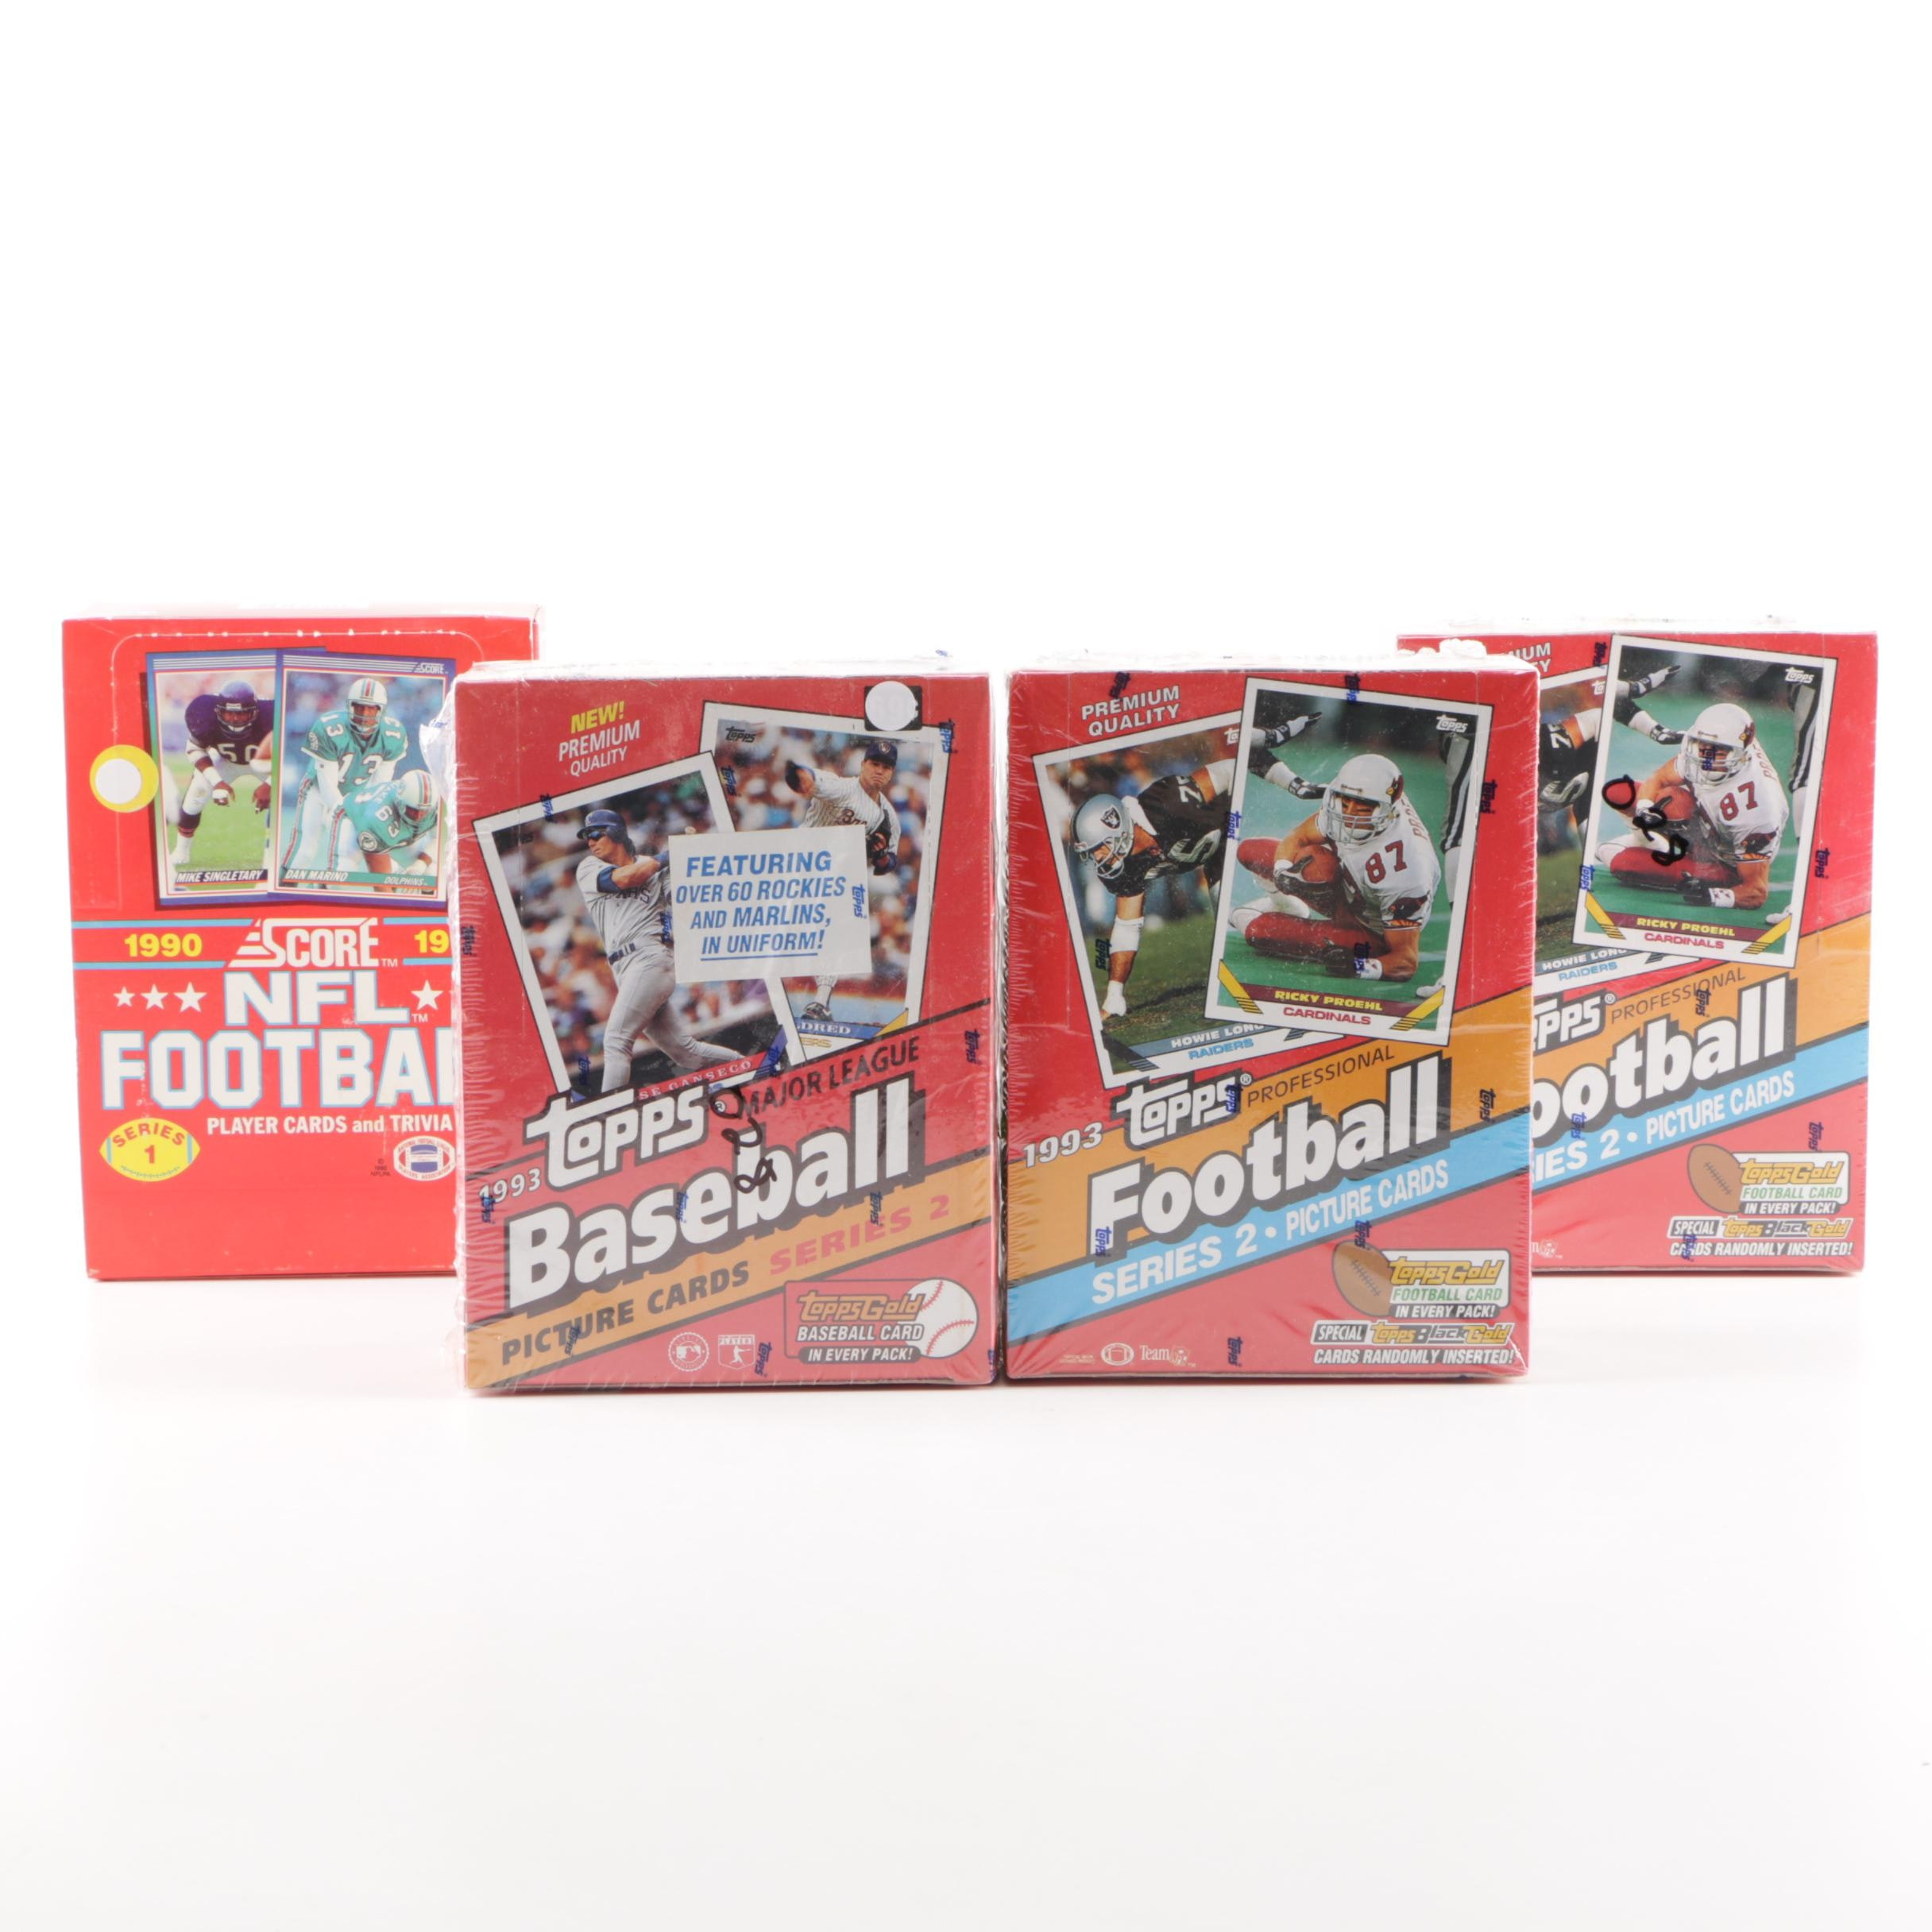 Unopened Football and Baseball Card Retail Boxes